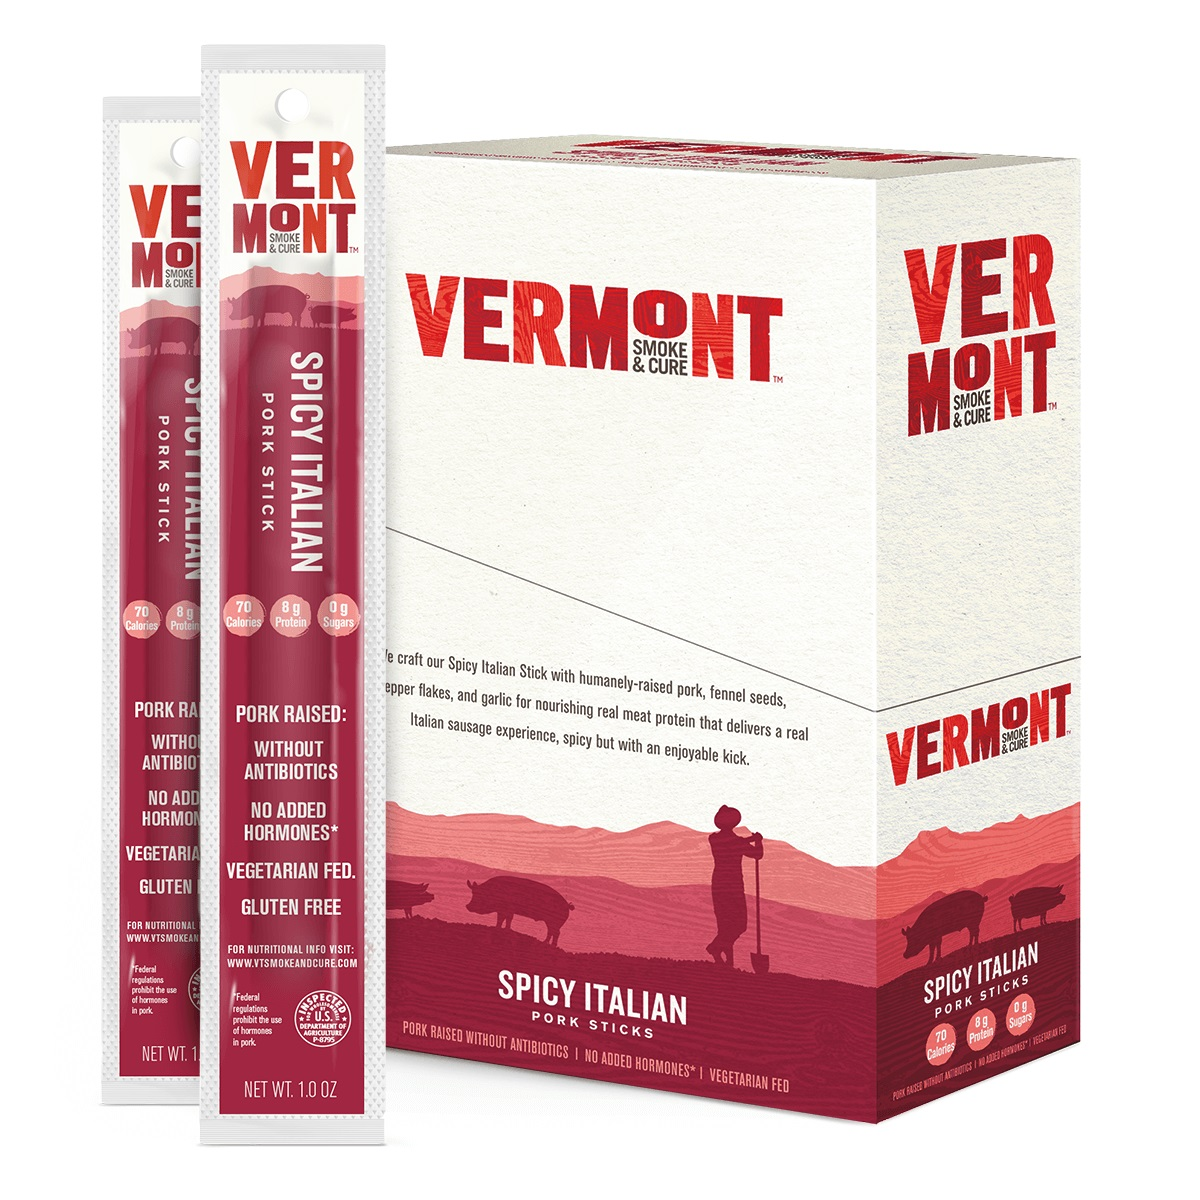 Vermont Smoke & Cure Meat Sticks, Pork, Antibiotic Free, Gluten Free, Spicy Italian, 1oz Stick, 24 Count